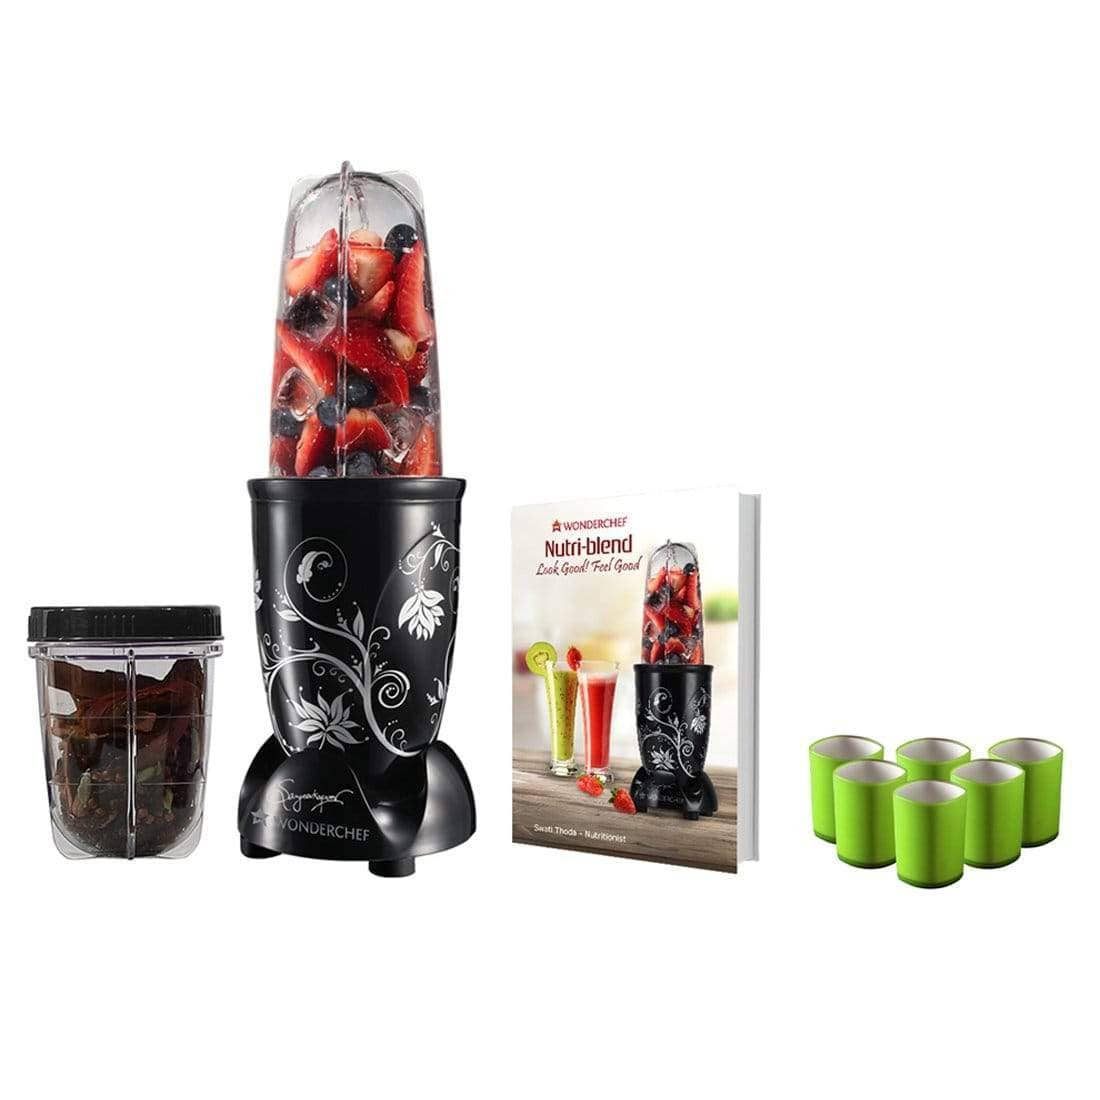 Nutri-blend, 22000 RPM Mixer-Grinder, Blender, SS Blades, 2 Unbreakable Jars, 2 Years warranty, 400 W-Black with Serving Glass Set, Online Recipe Book By Chef Sanjeev Kapoor